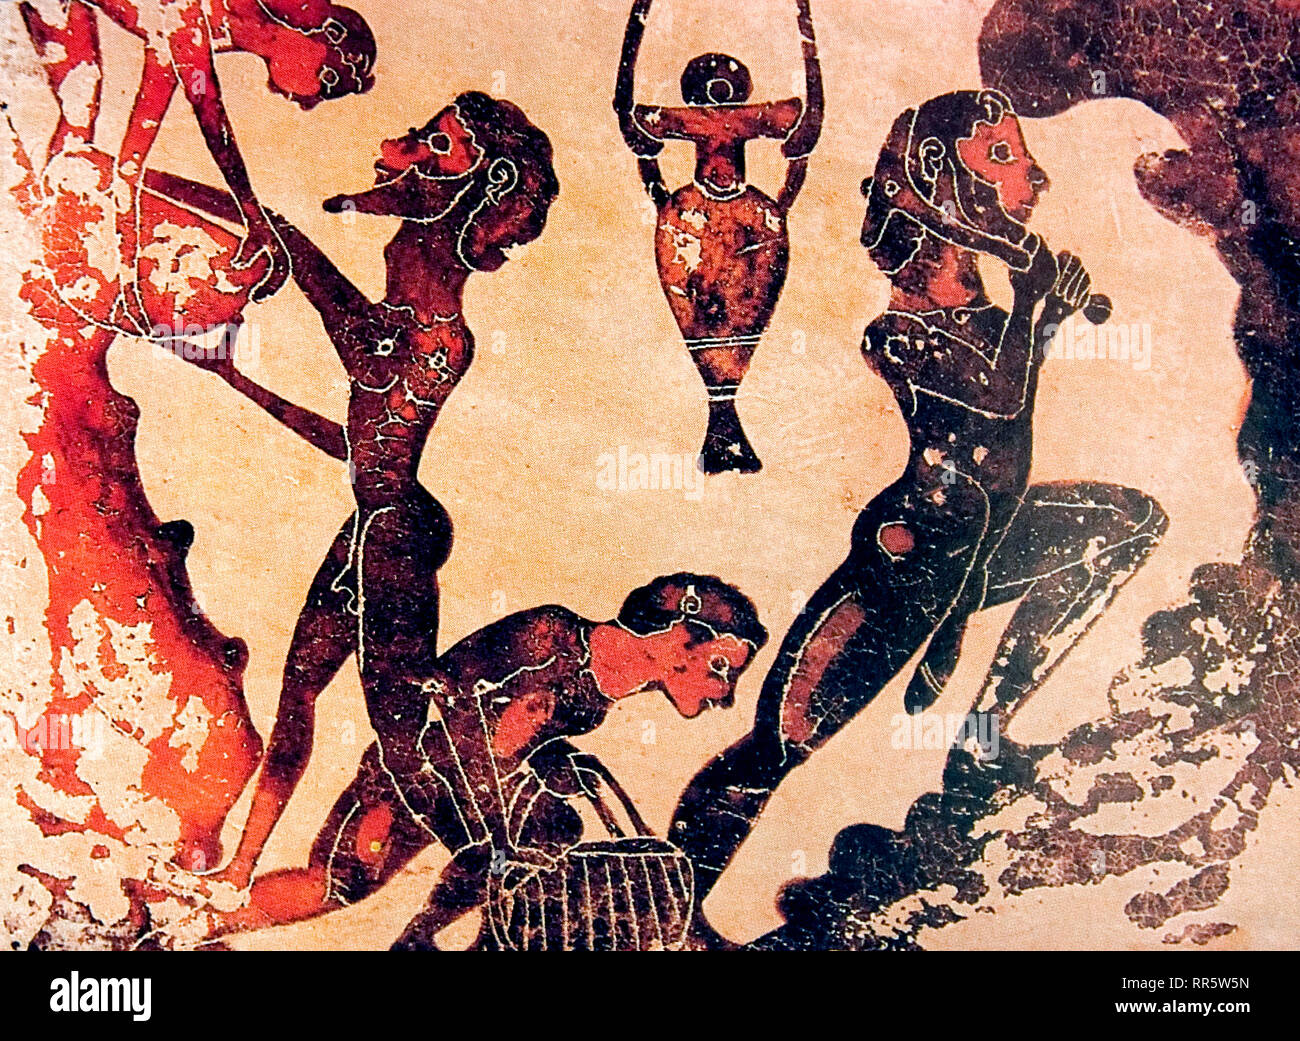 Slaves working in a mine. Corinthian terracotta plaque painting, 5th century BC - Stock Image